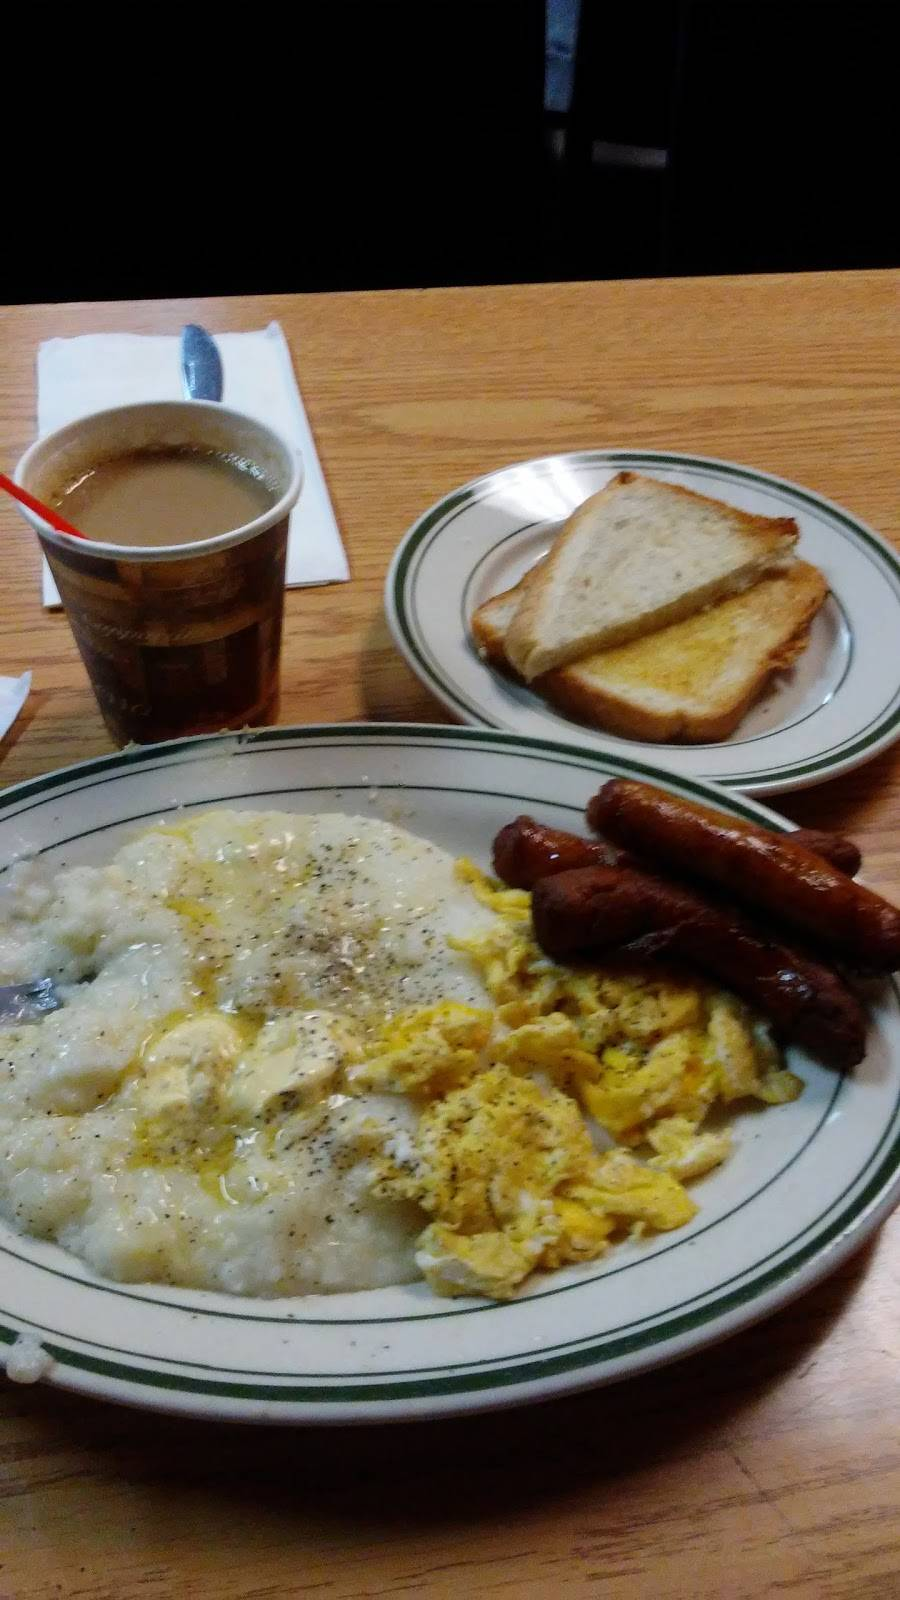 Andys   cafe   2262 3rd Ave, New York, NY 10035, USA   2128602614 OR +1 212-860-2614